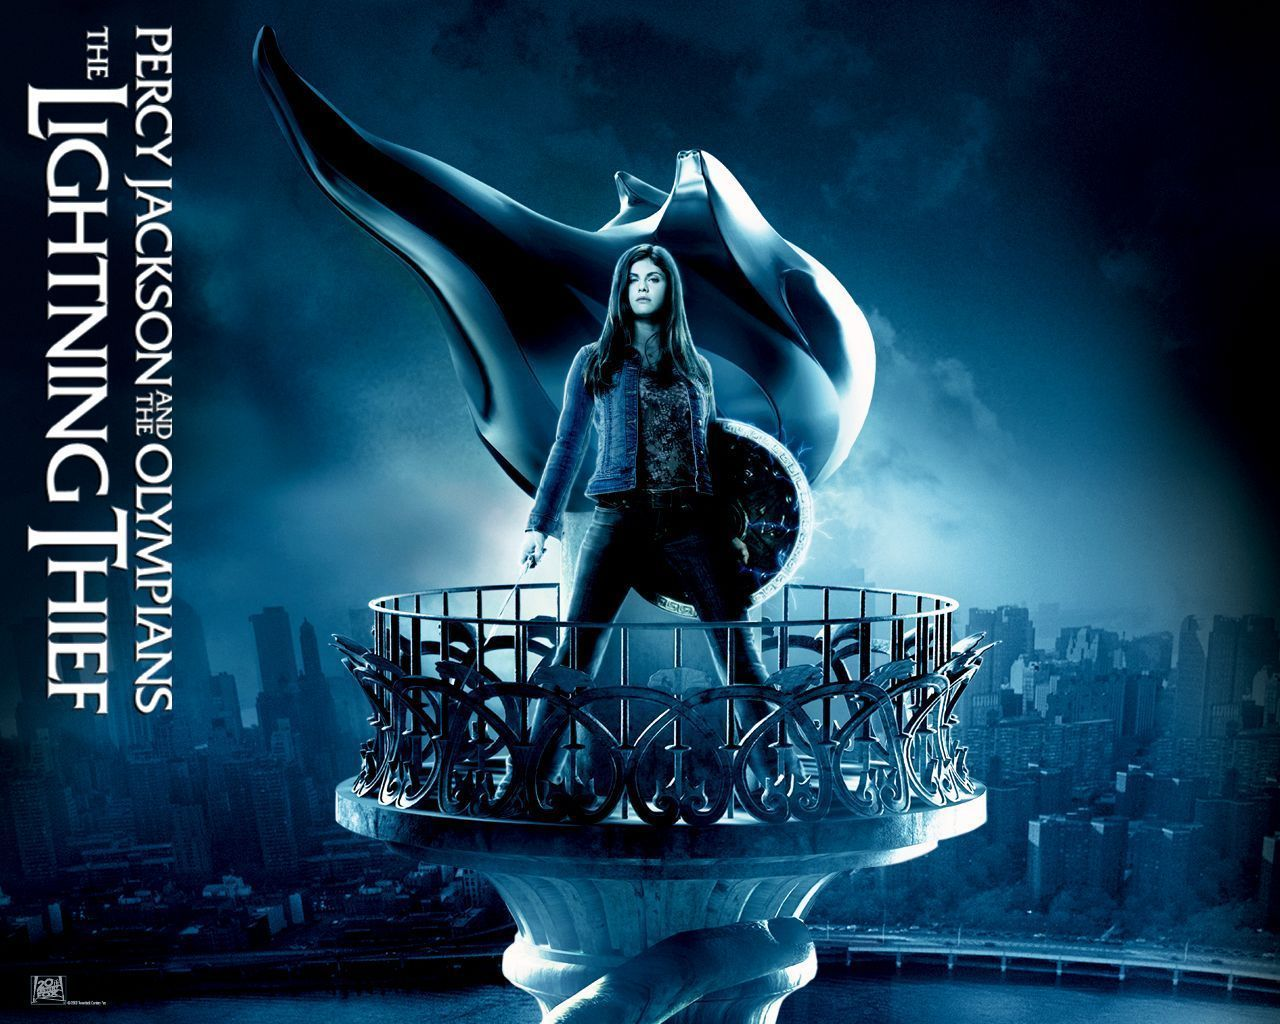 Alexandra daddario in percy jackson and the olympians the lightning